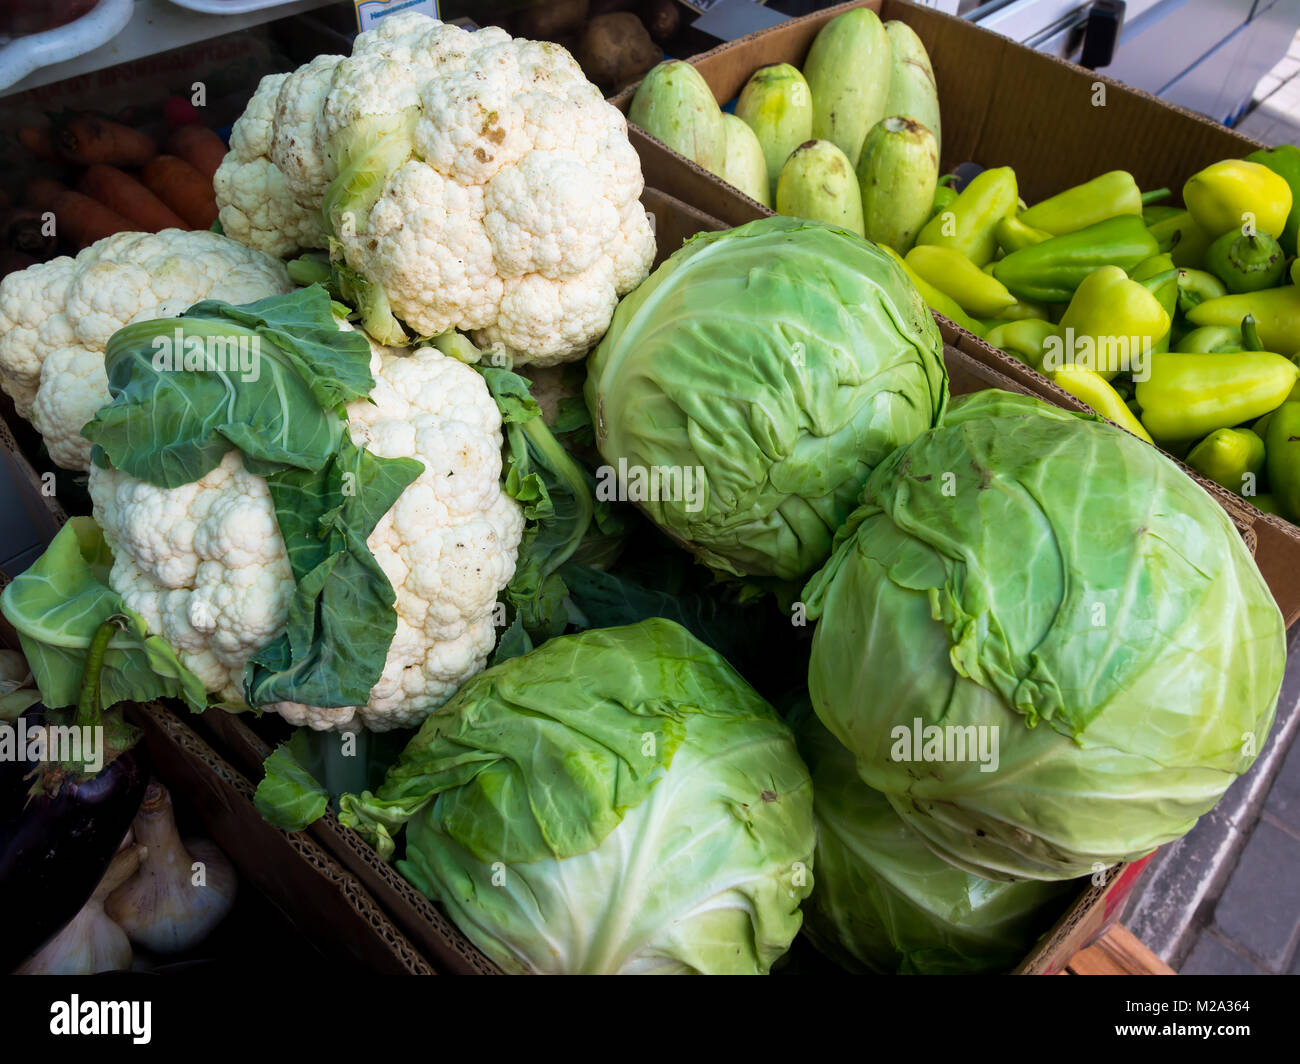 Cardboard boxes with vegetables on a street point of sale - Stock Image